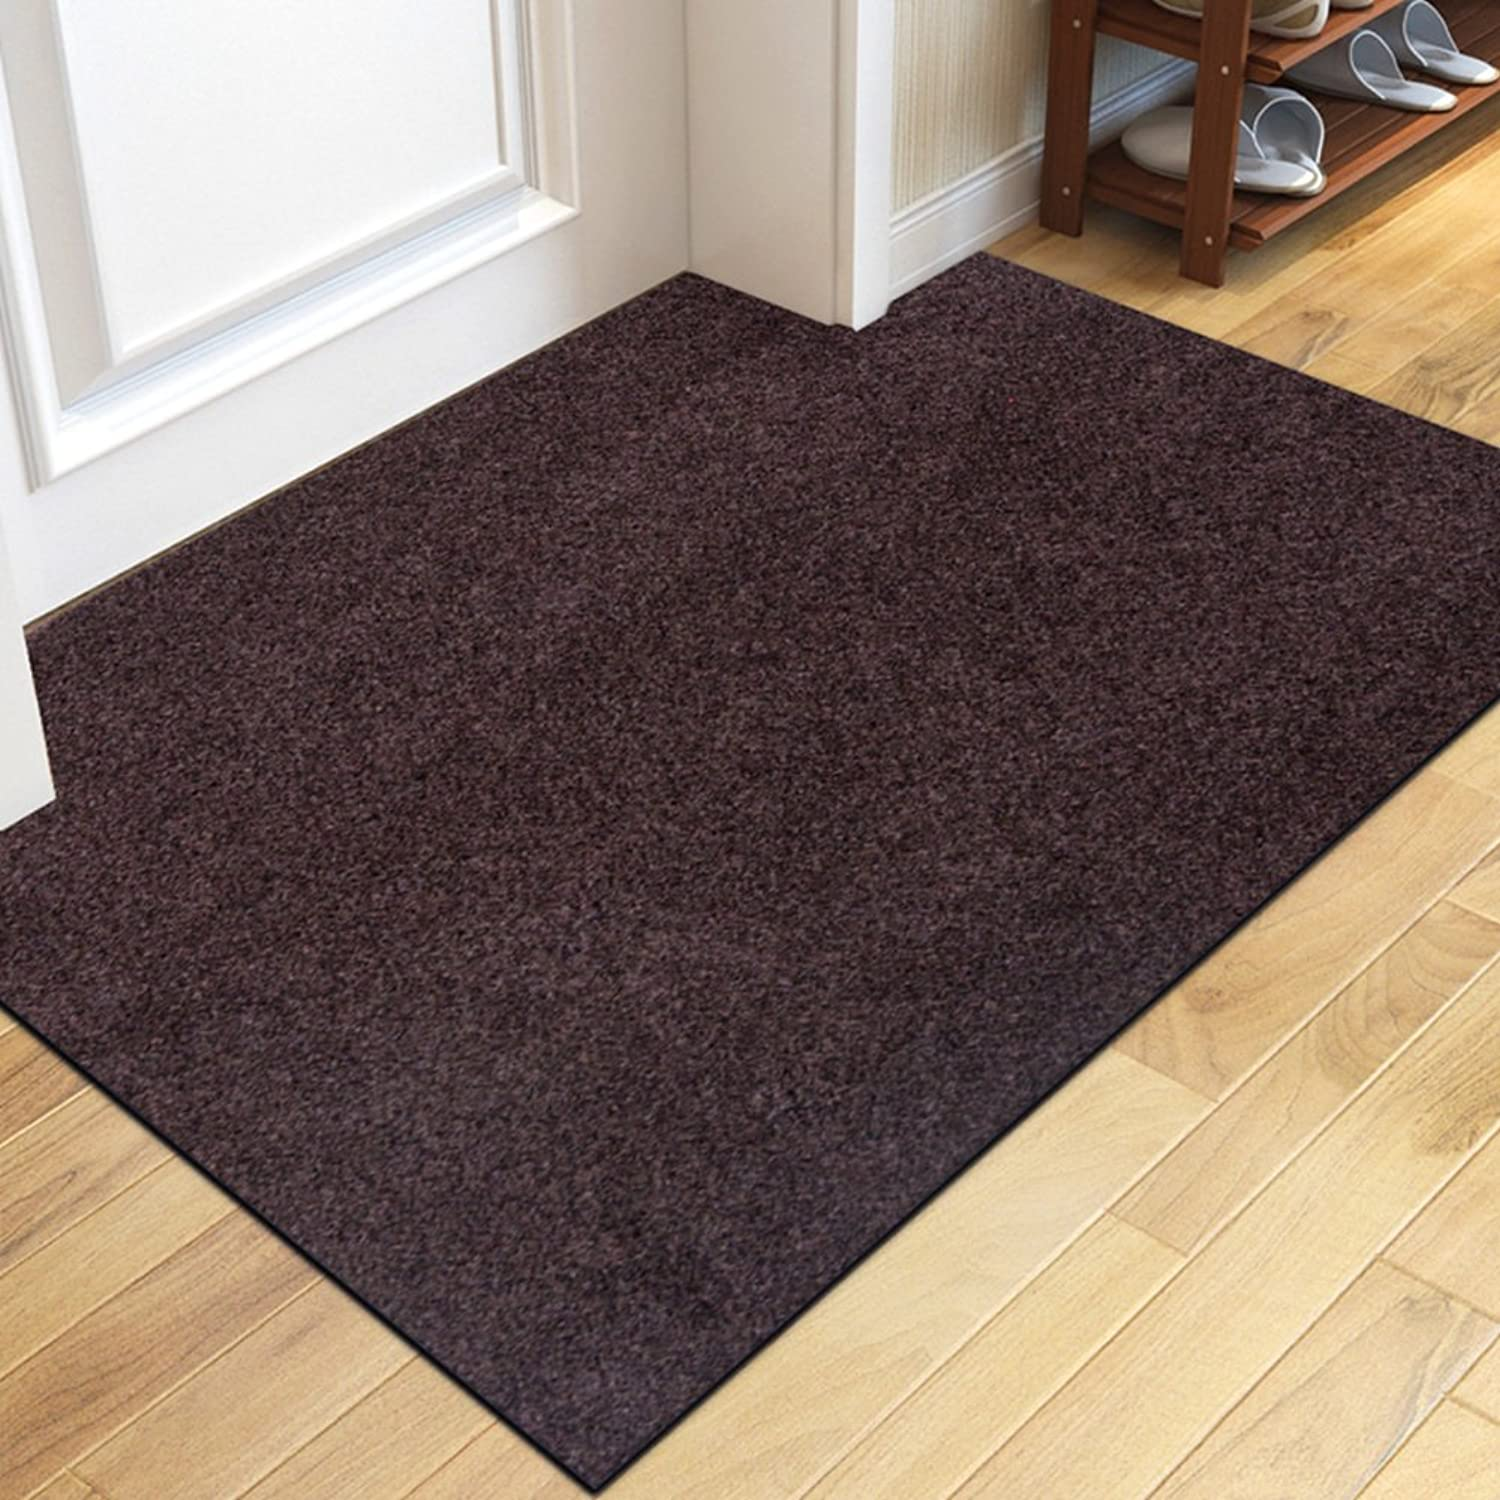 Entrance mat Door mats Indoor mat Door mats Household use,[Entrance],[Hall],The Ground mat can be Cropped-C 120x90cm(47x35inch)